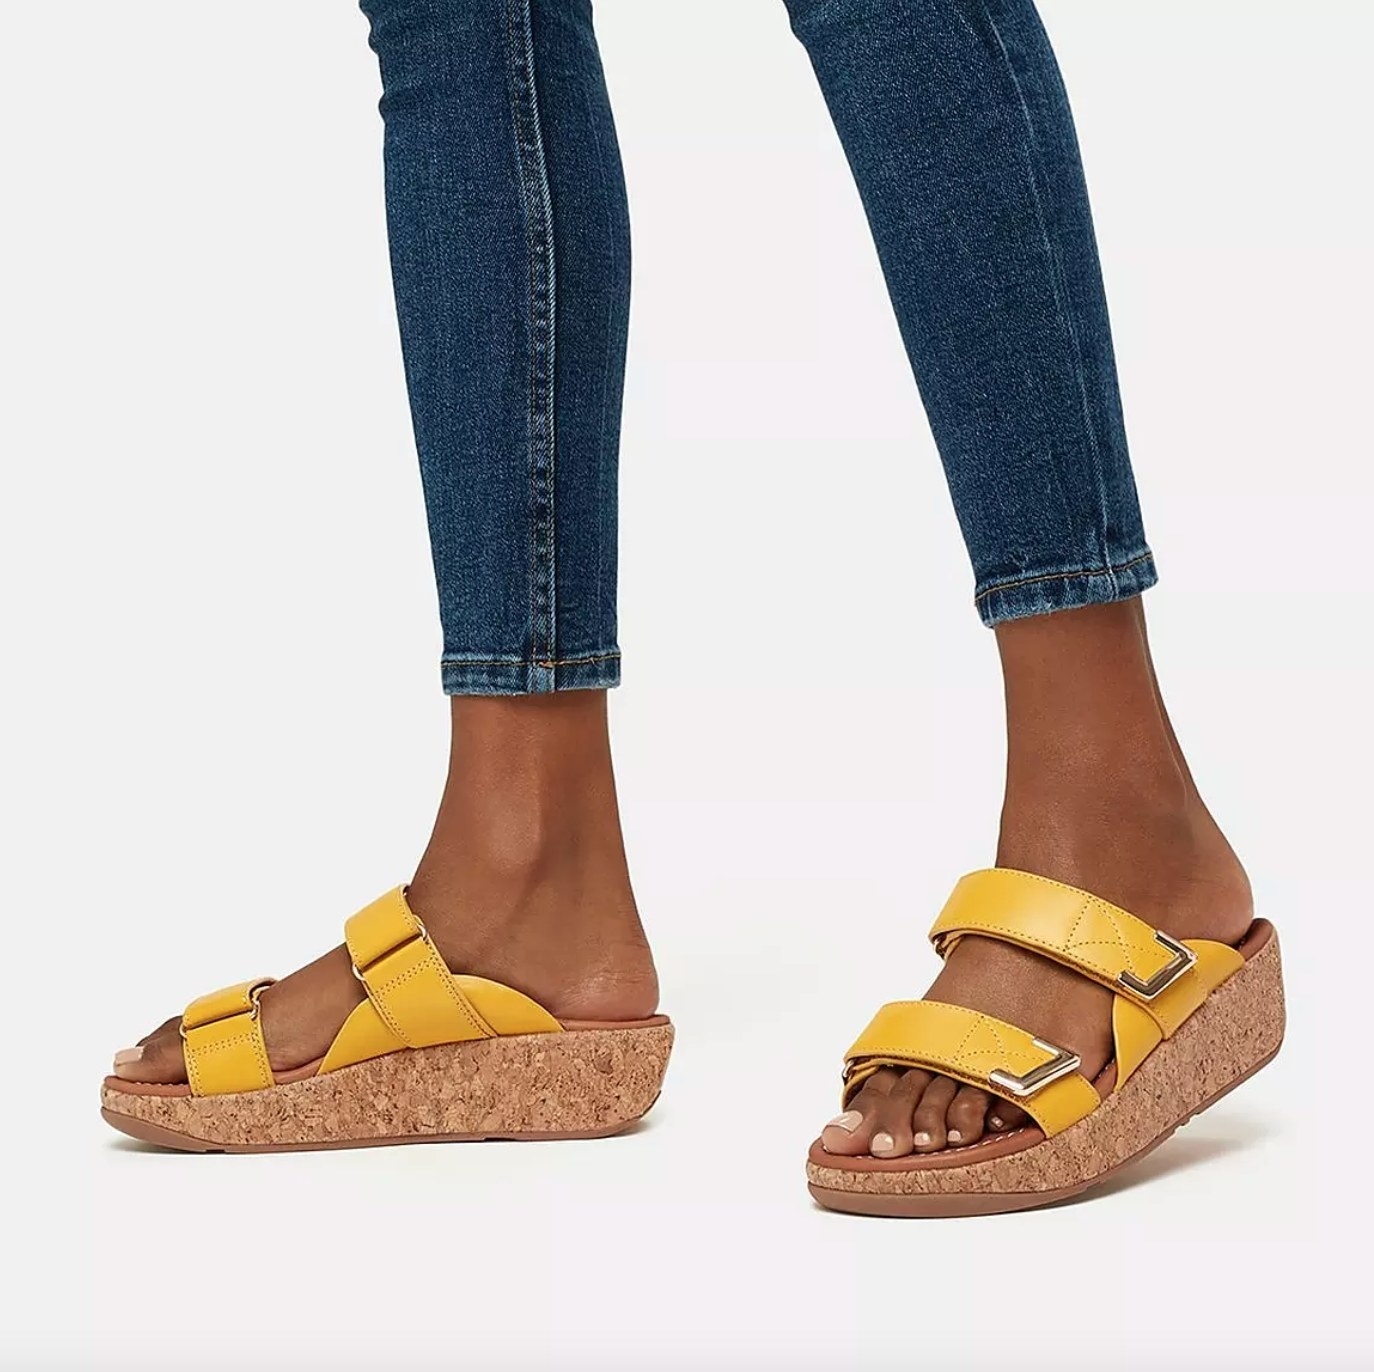 the pair of adjustable leather slides in sunshine yellow